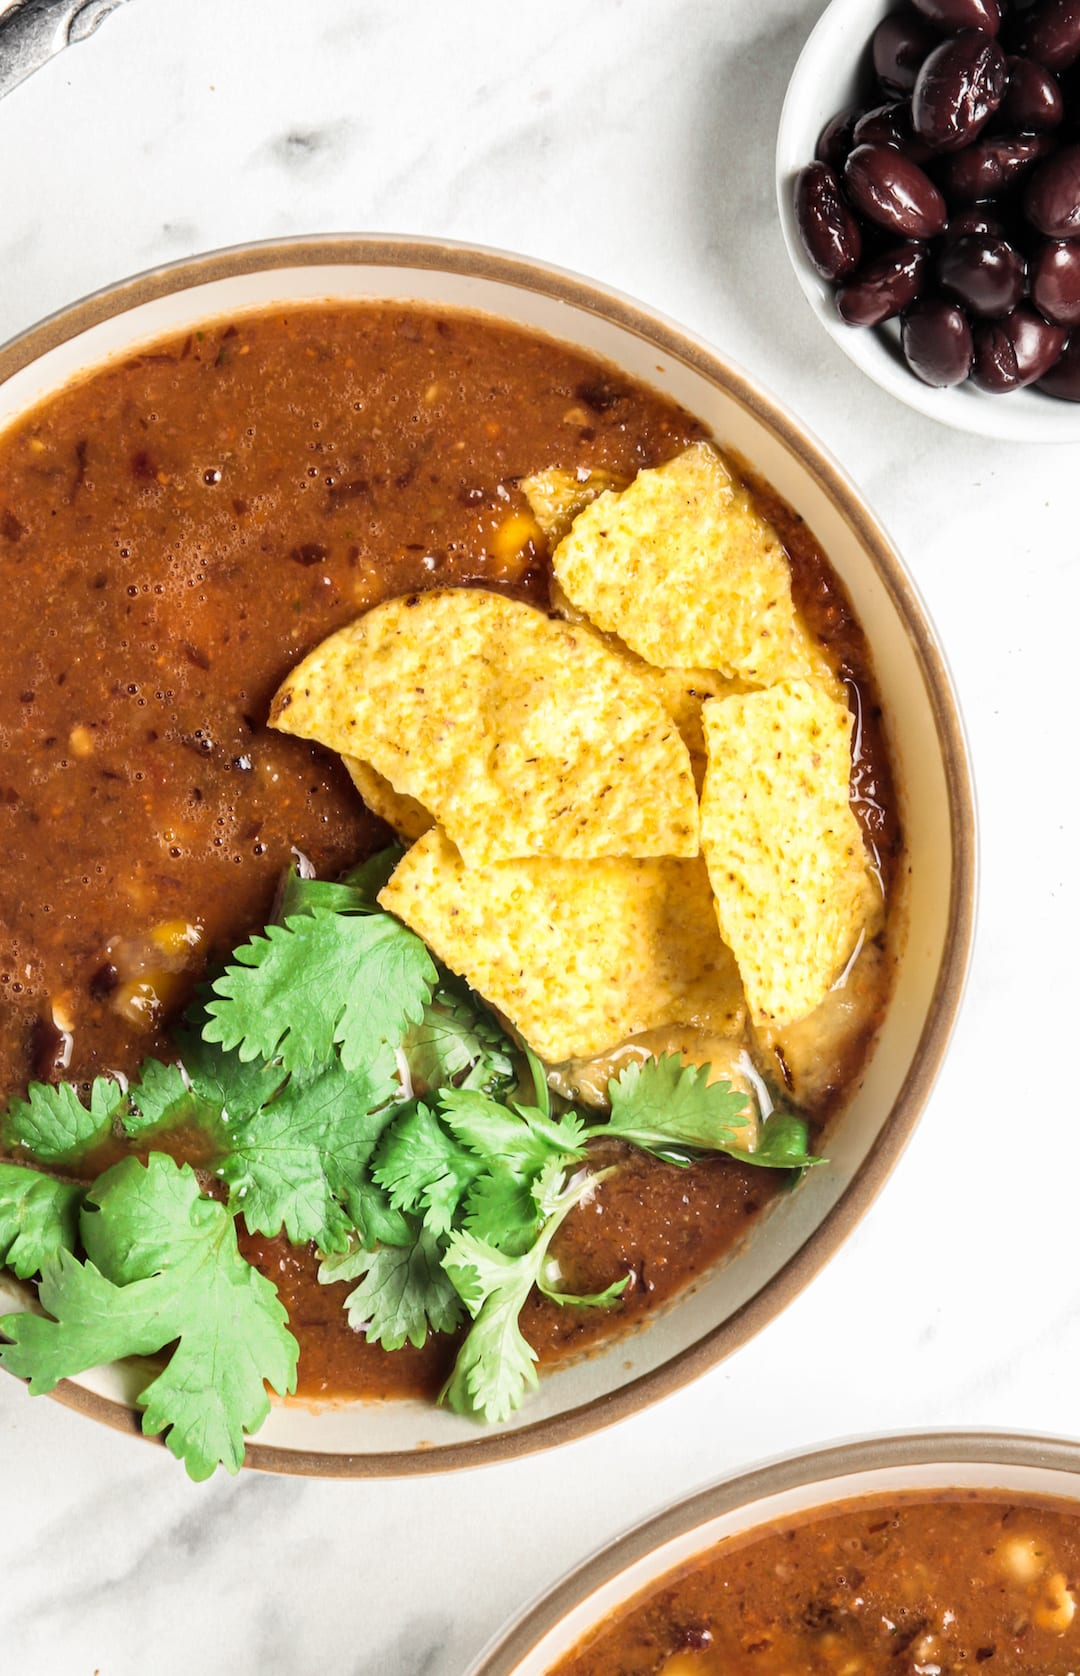 Easy Blender Vitamix Tortilla Soup with tortilla corn chips and cilantro